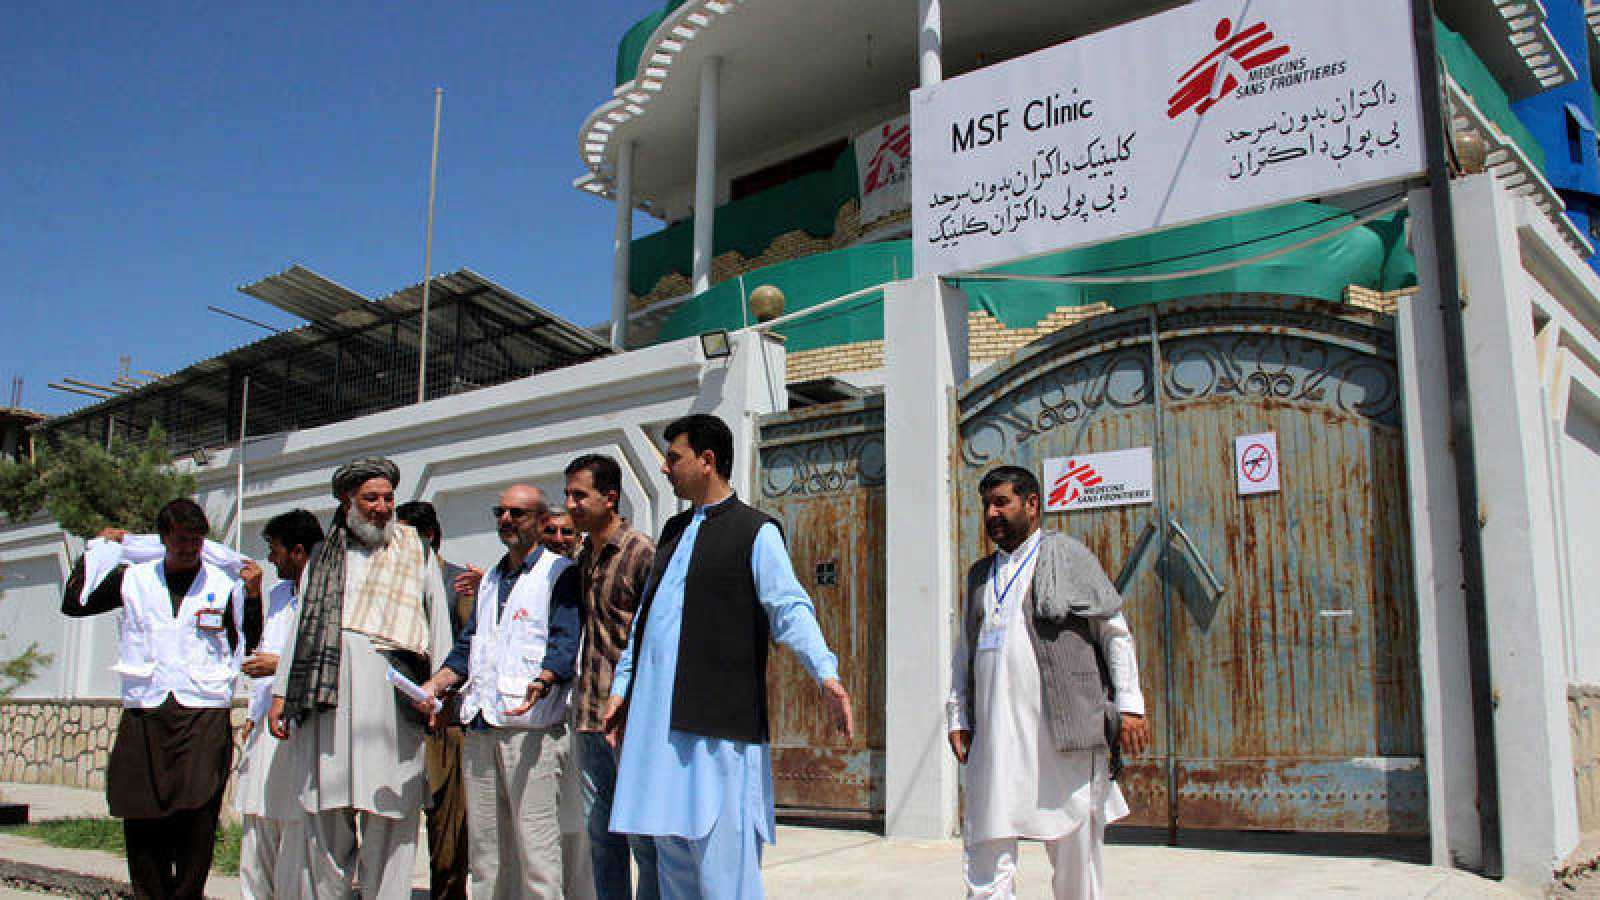 MSF reopened its clinic in Kunduz